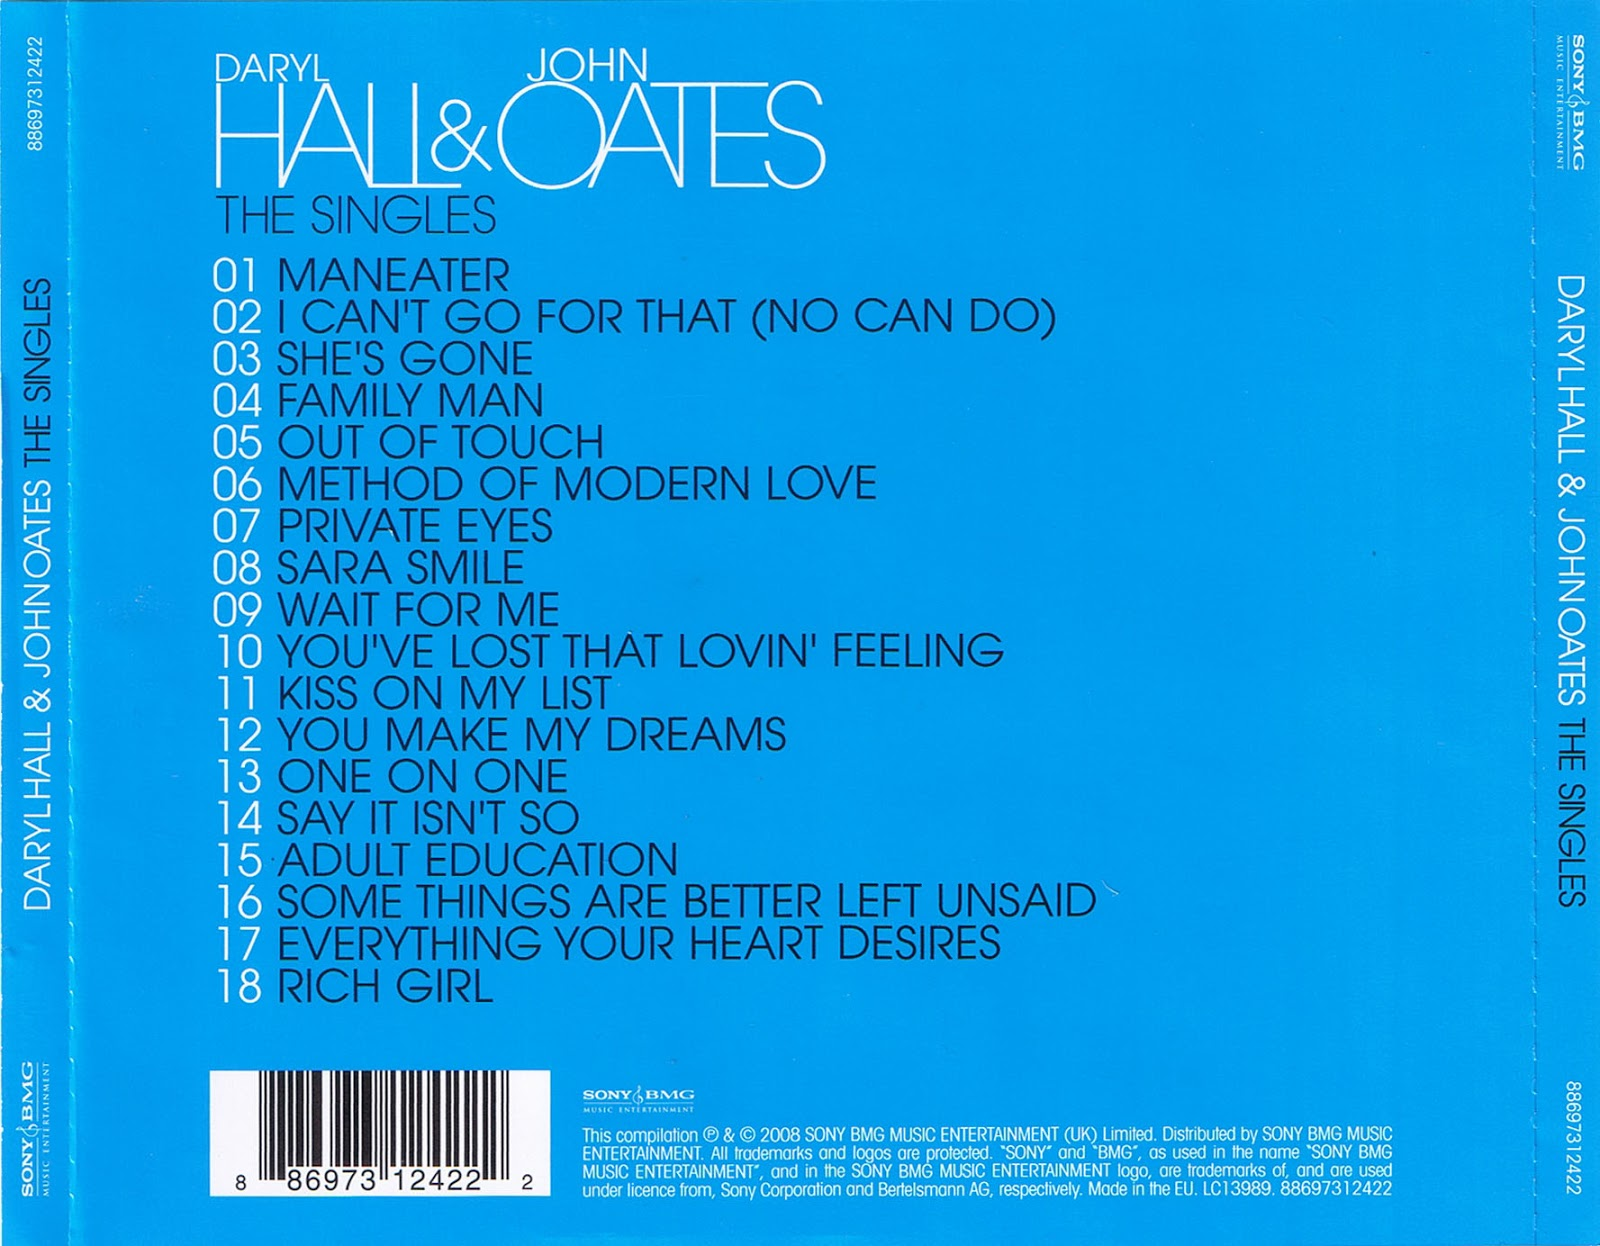 hall and oates the singles zip Change of season is the fourteenth studio album from daryl hall & john oates, released in 1990 the lead single so close peaked at no 11 on the billboard hot 100.